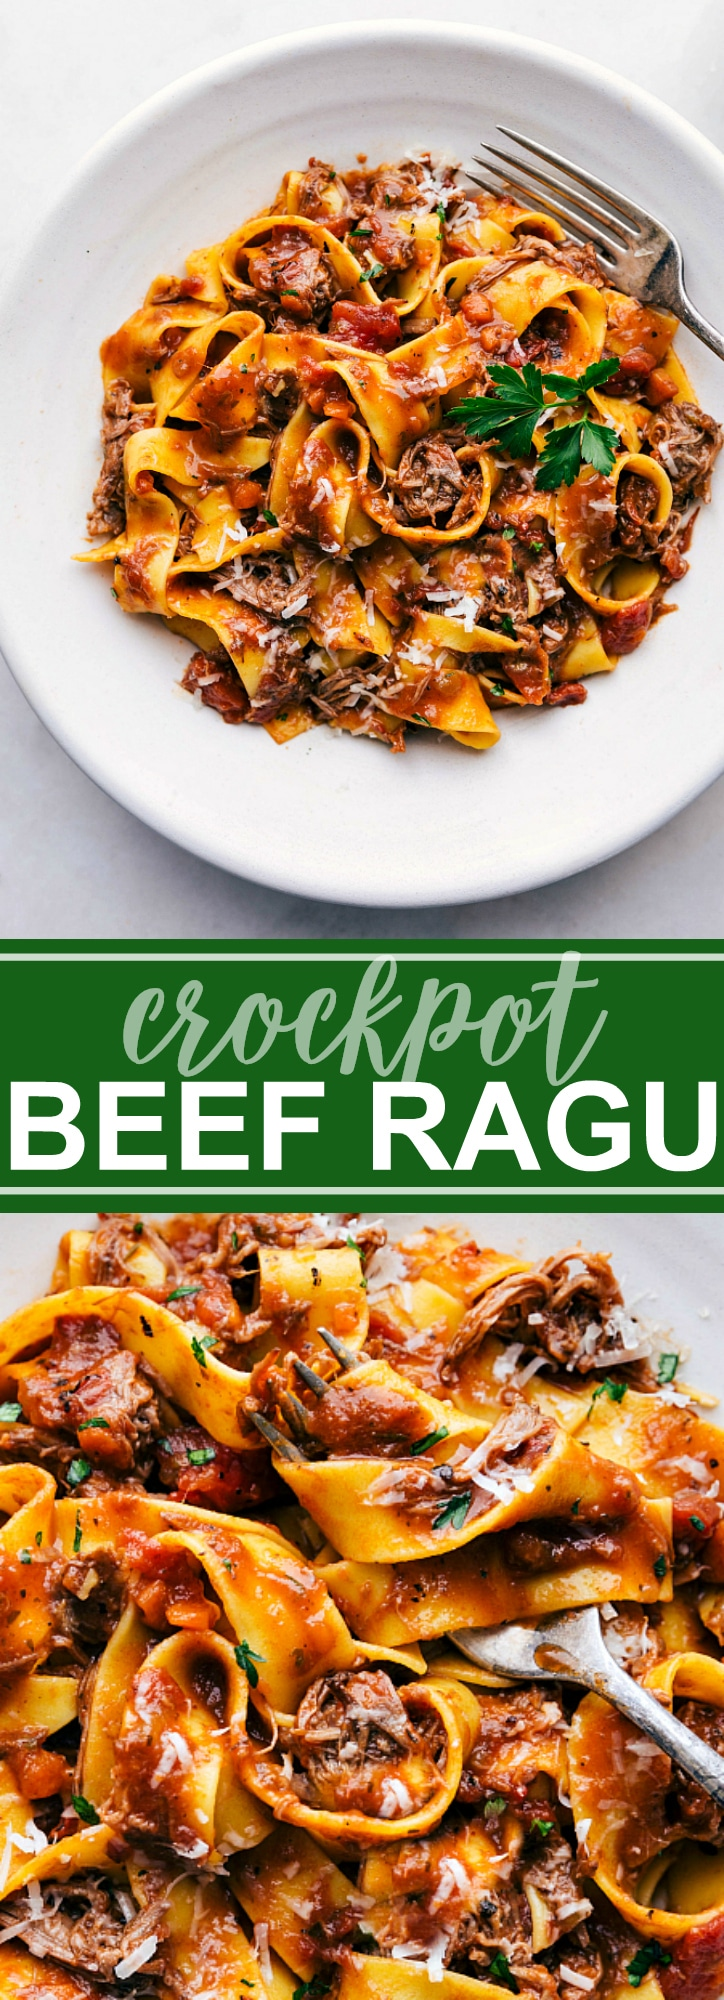 Beef ragu made in the crockpot (slow cooker) and served over pappardelle pasta. Delicious Italian-inspired cold weather comfort food. via chelseasmessyapron.com #crockpot #meal #recipe #easy #beef #ragu #red #meat #slow #cooker #pappardelle #pasta